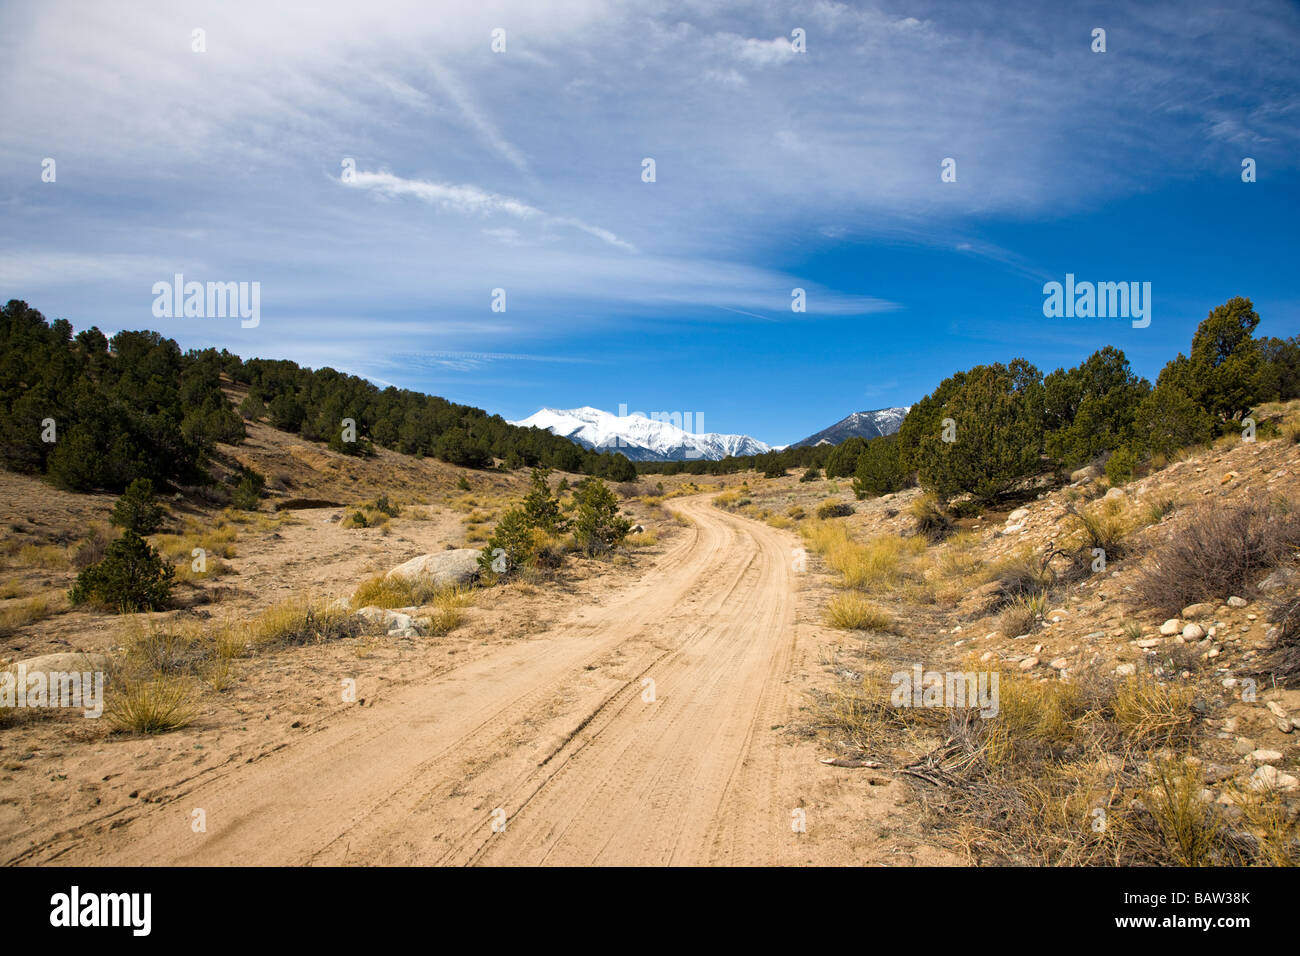 Dirt road in Chaffee County Colorado with the Collegiate Peaks in the distance - Stock Image